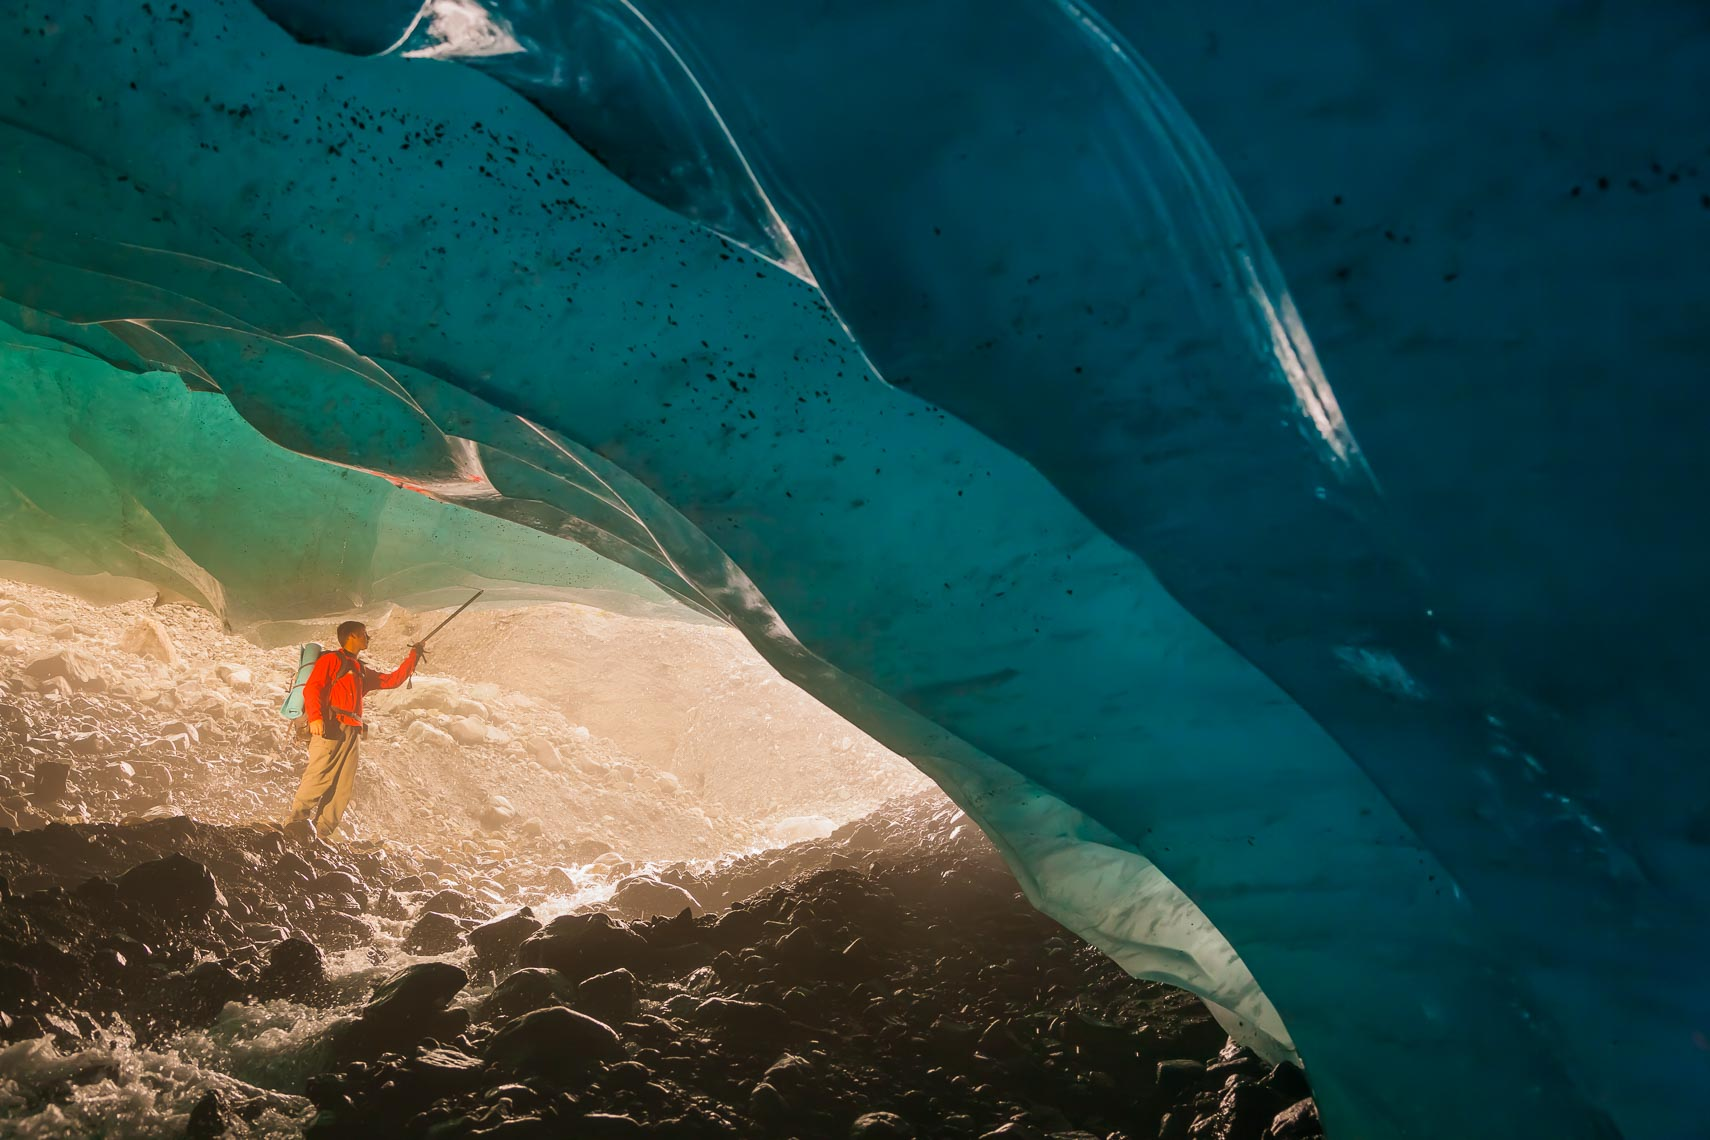 Explore Ice Caves Adventure Photography | Michael DeYoung